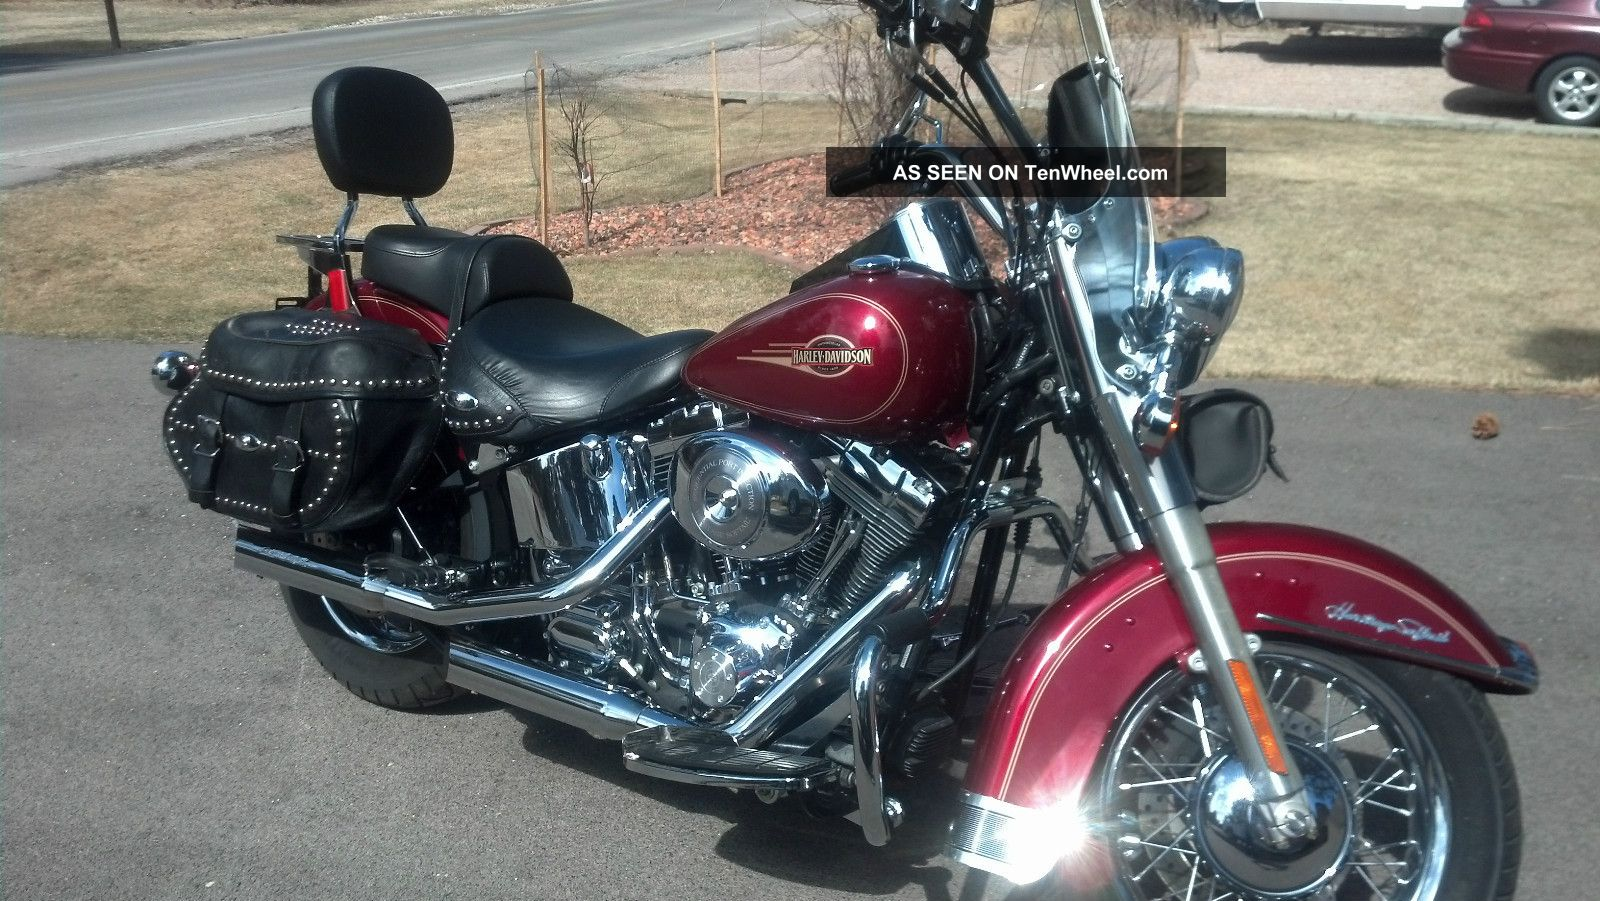 Deep Red 2005 Hd Heritage Classic With Big Bore Kit And Screamin Eagle Pipes Softail photo